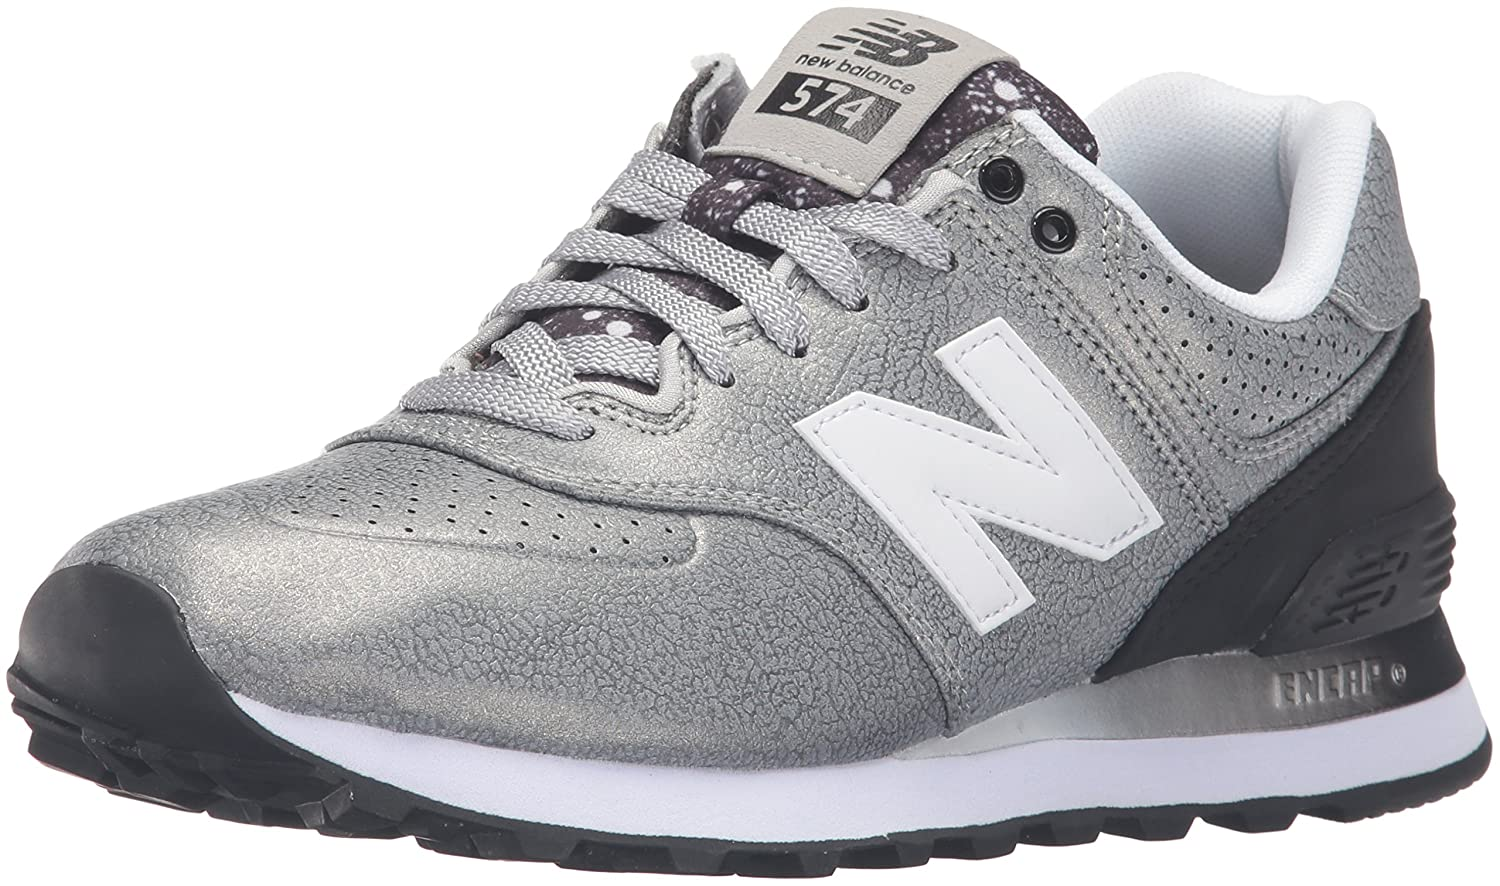 New Balance Women's WL574 CORE Plus-W Lifestyle Sneaker B019569HR6 6 B(M) US|Silver/Black